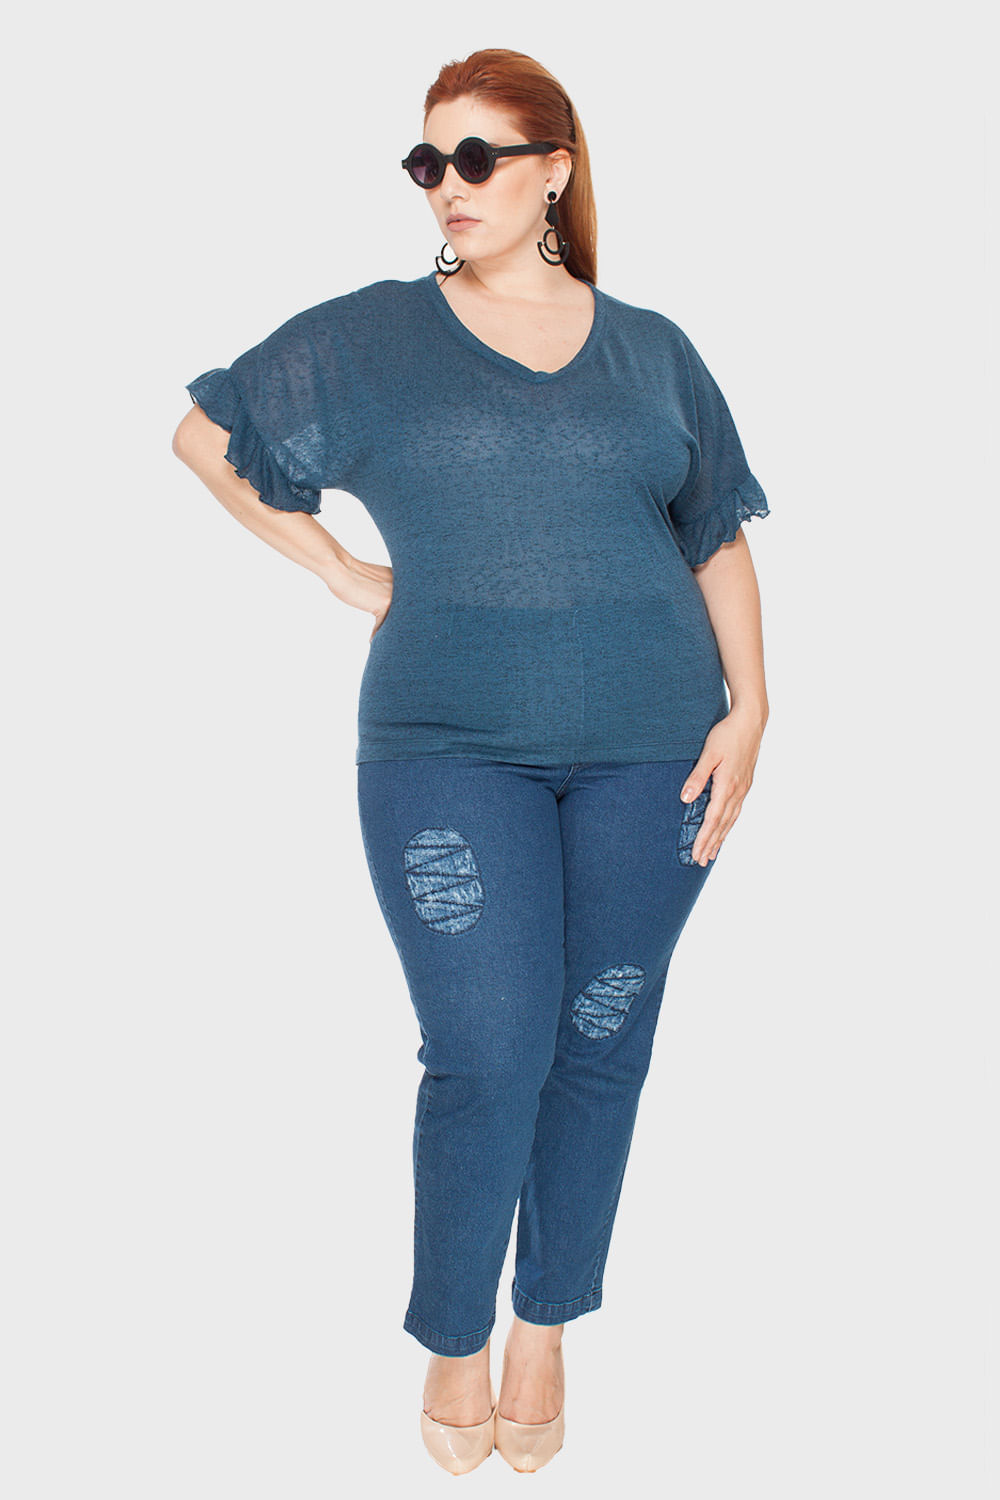 Blusa-New-Antropology-Babados-Plus-Size_3